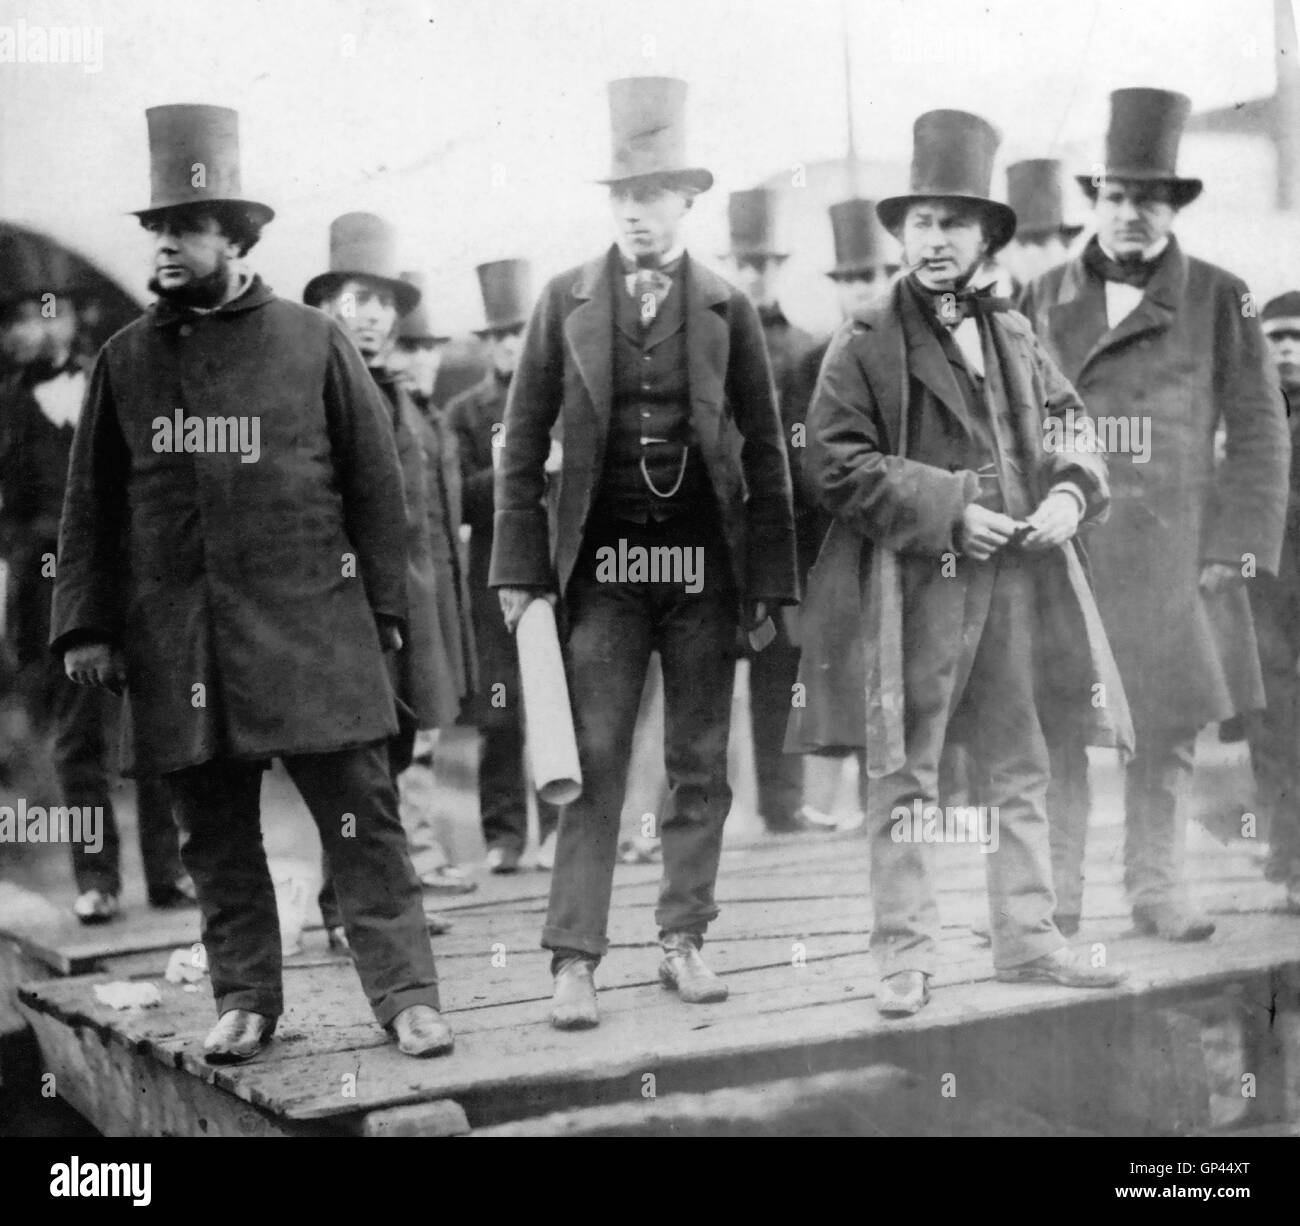 ISAMBARD KINGDOM BRUNEL (1806-1859) English engineer at the launch of the Great Eastern in January 1858. From left: - Stock Image